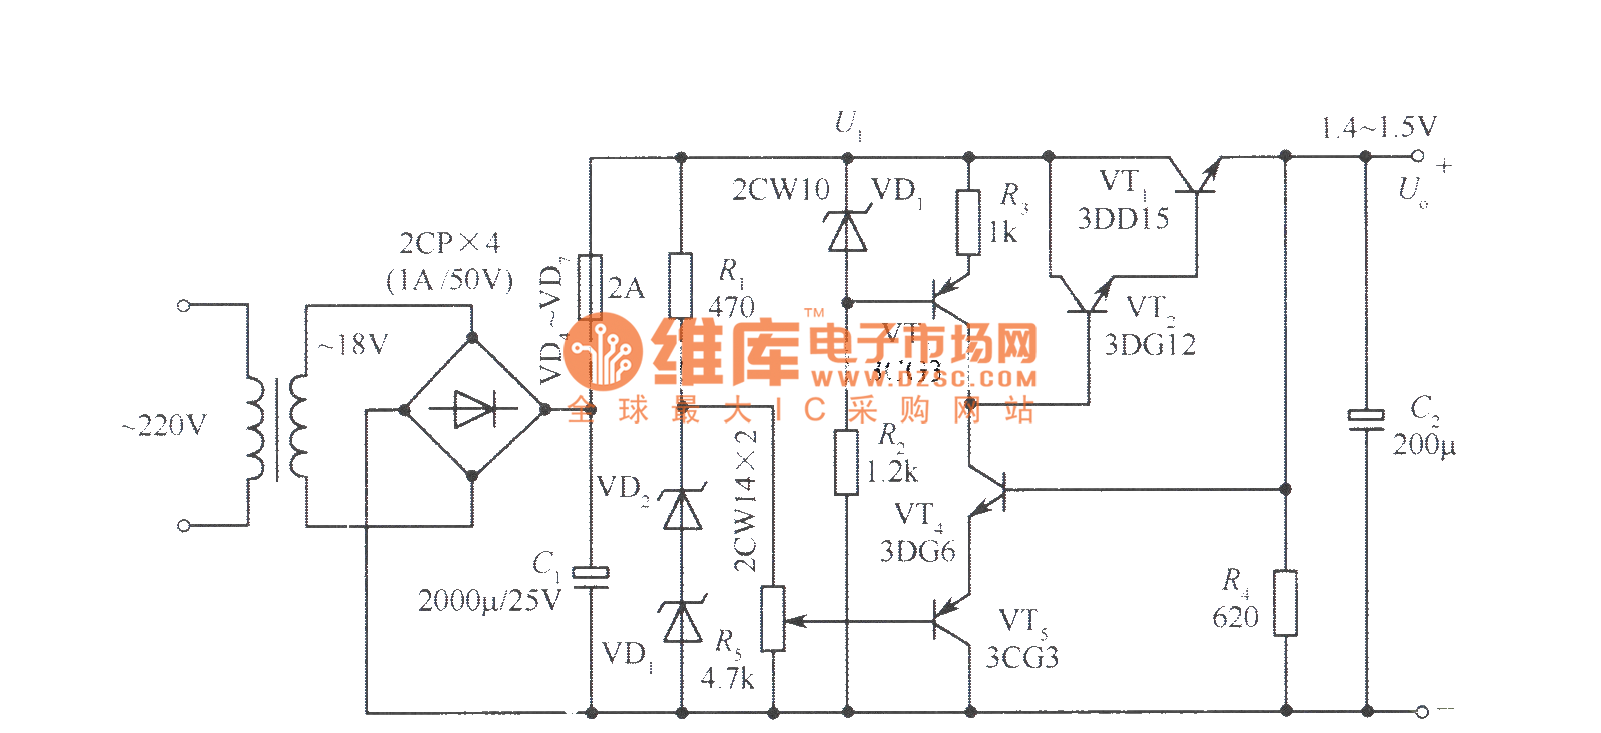 1 45v to 15v full sampling regulated power supply circuit